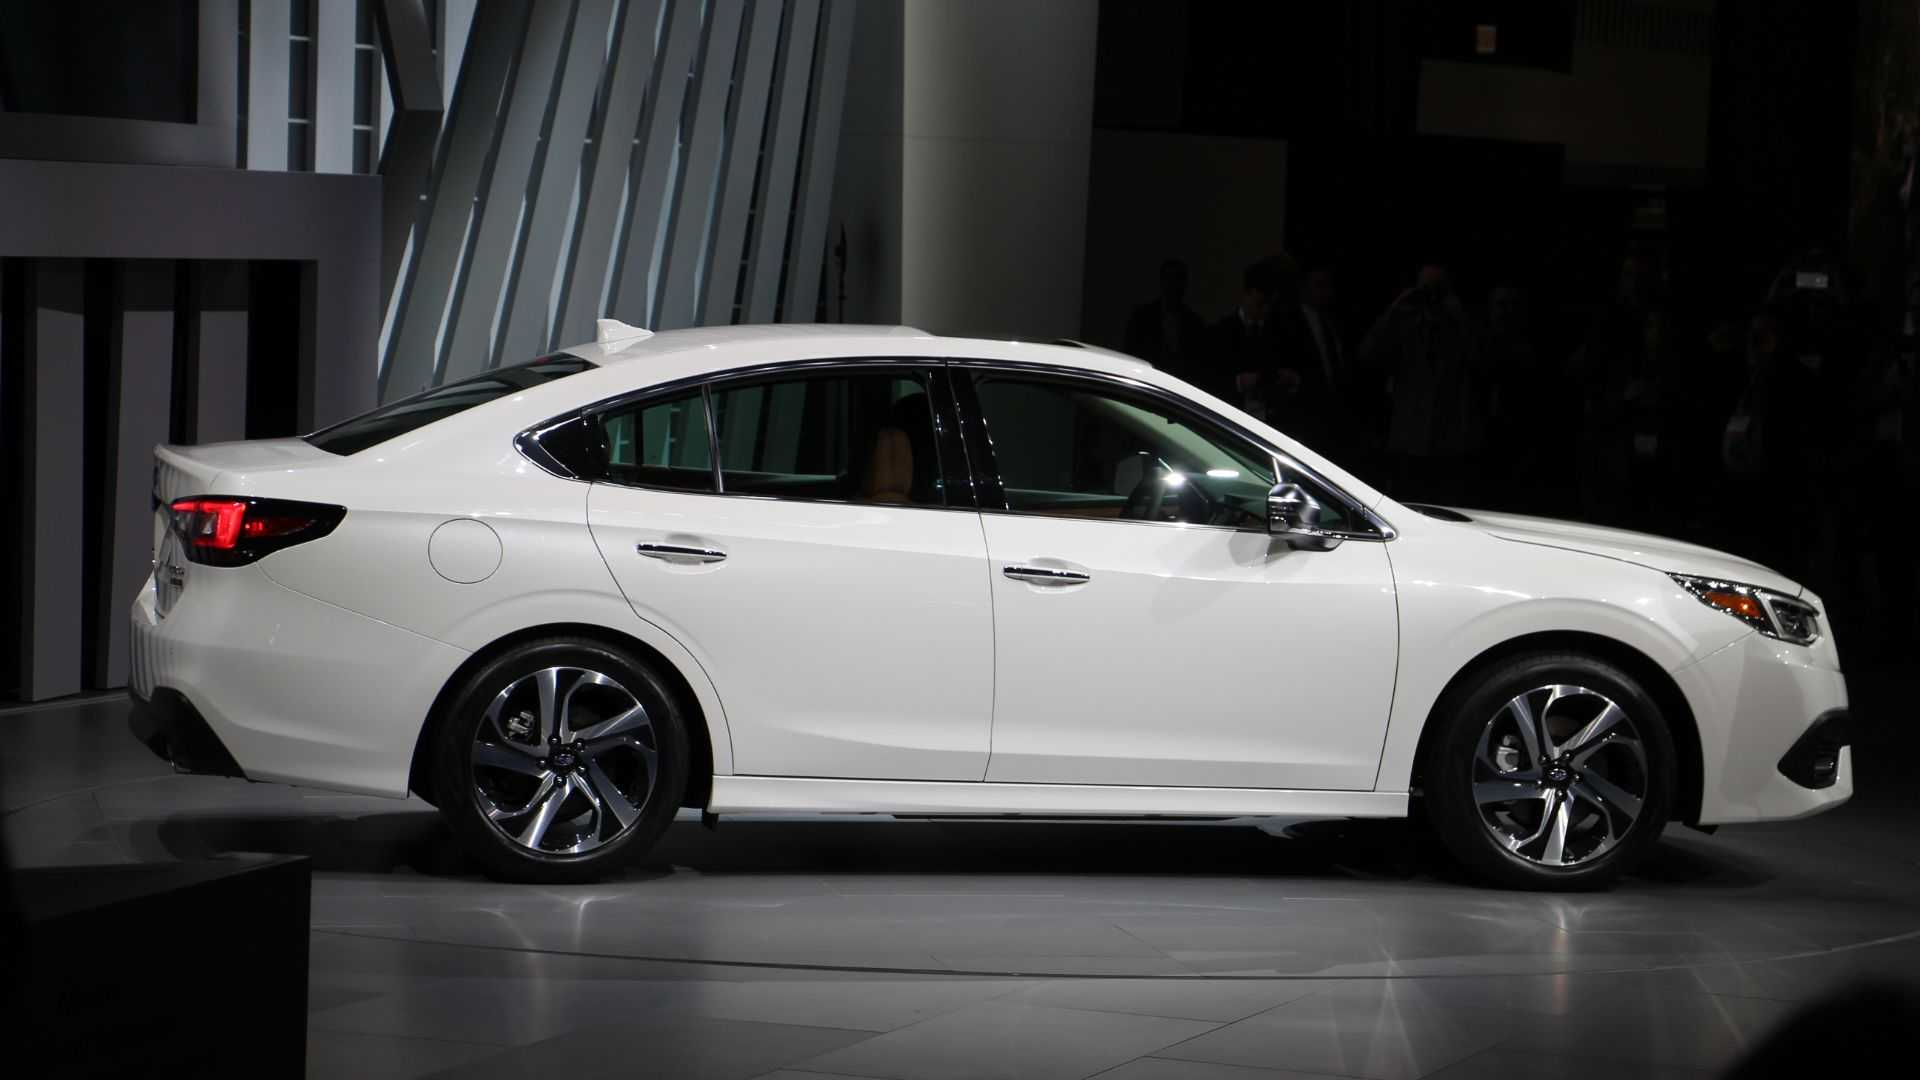 33 All New Subaru Legacy 2020 Turbo Price and Release date